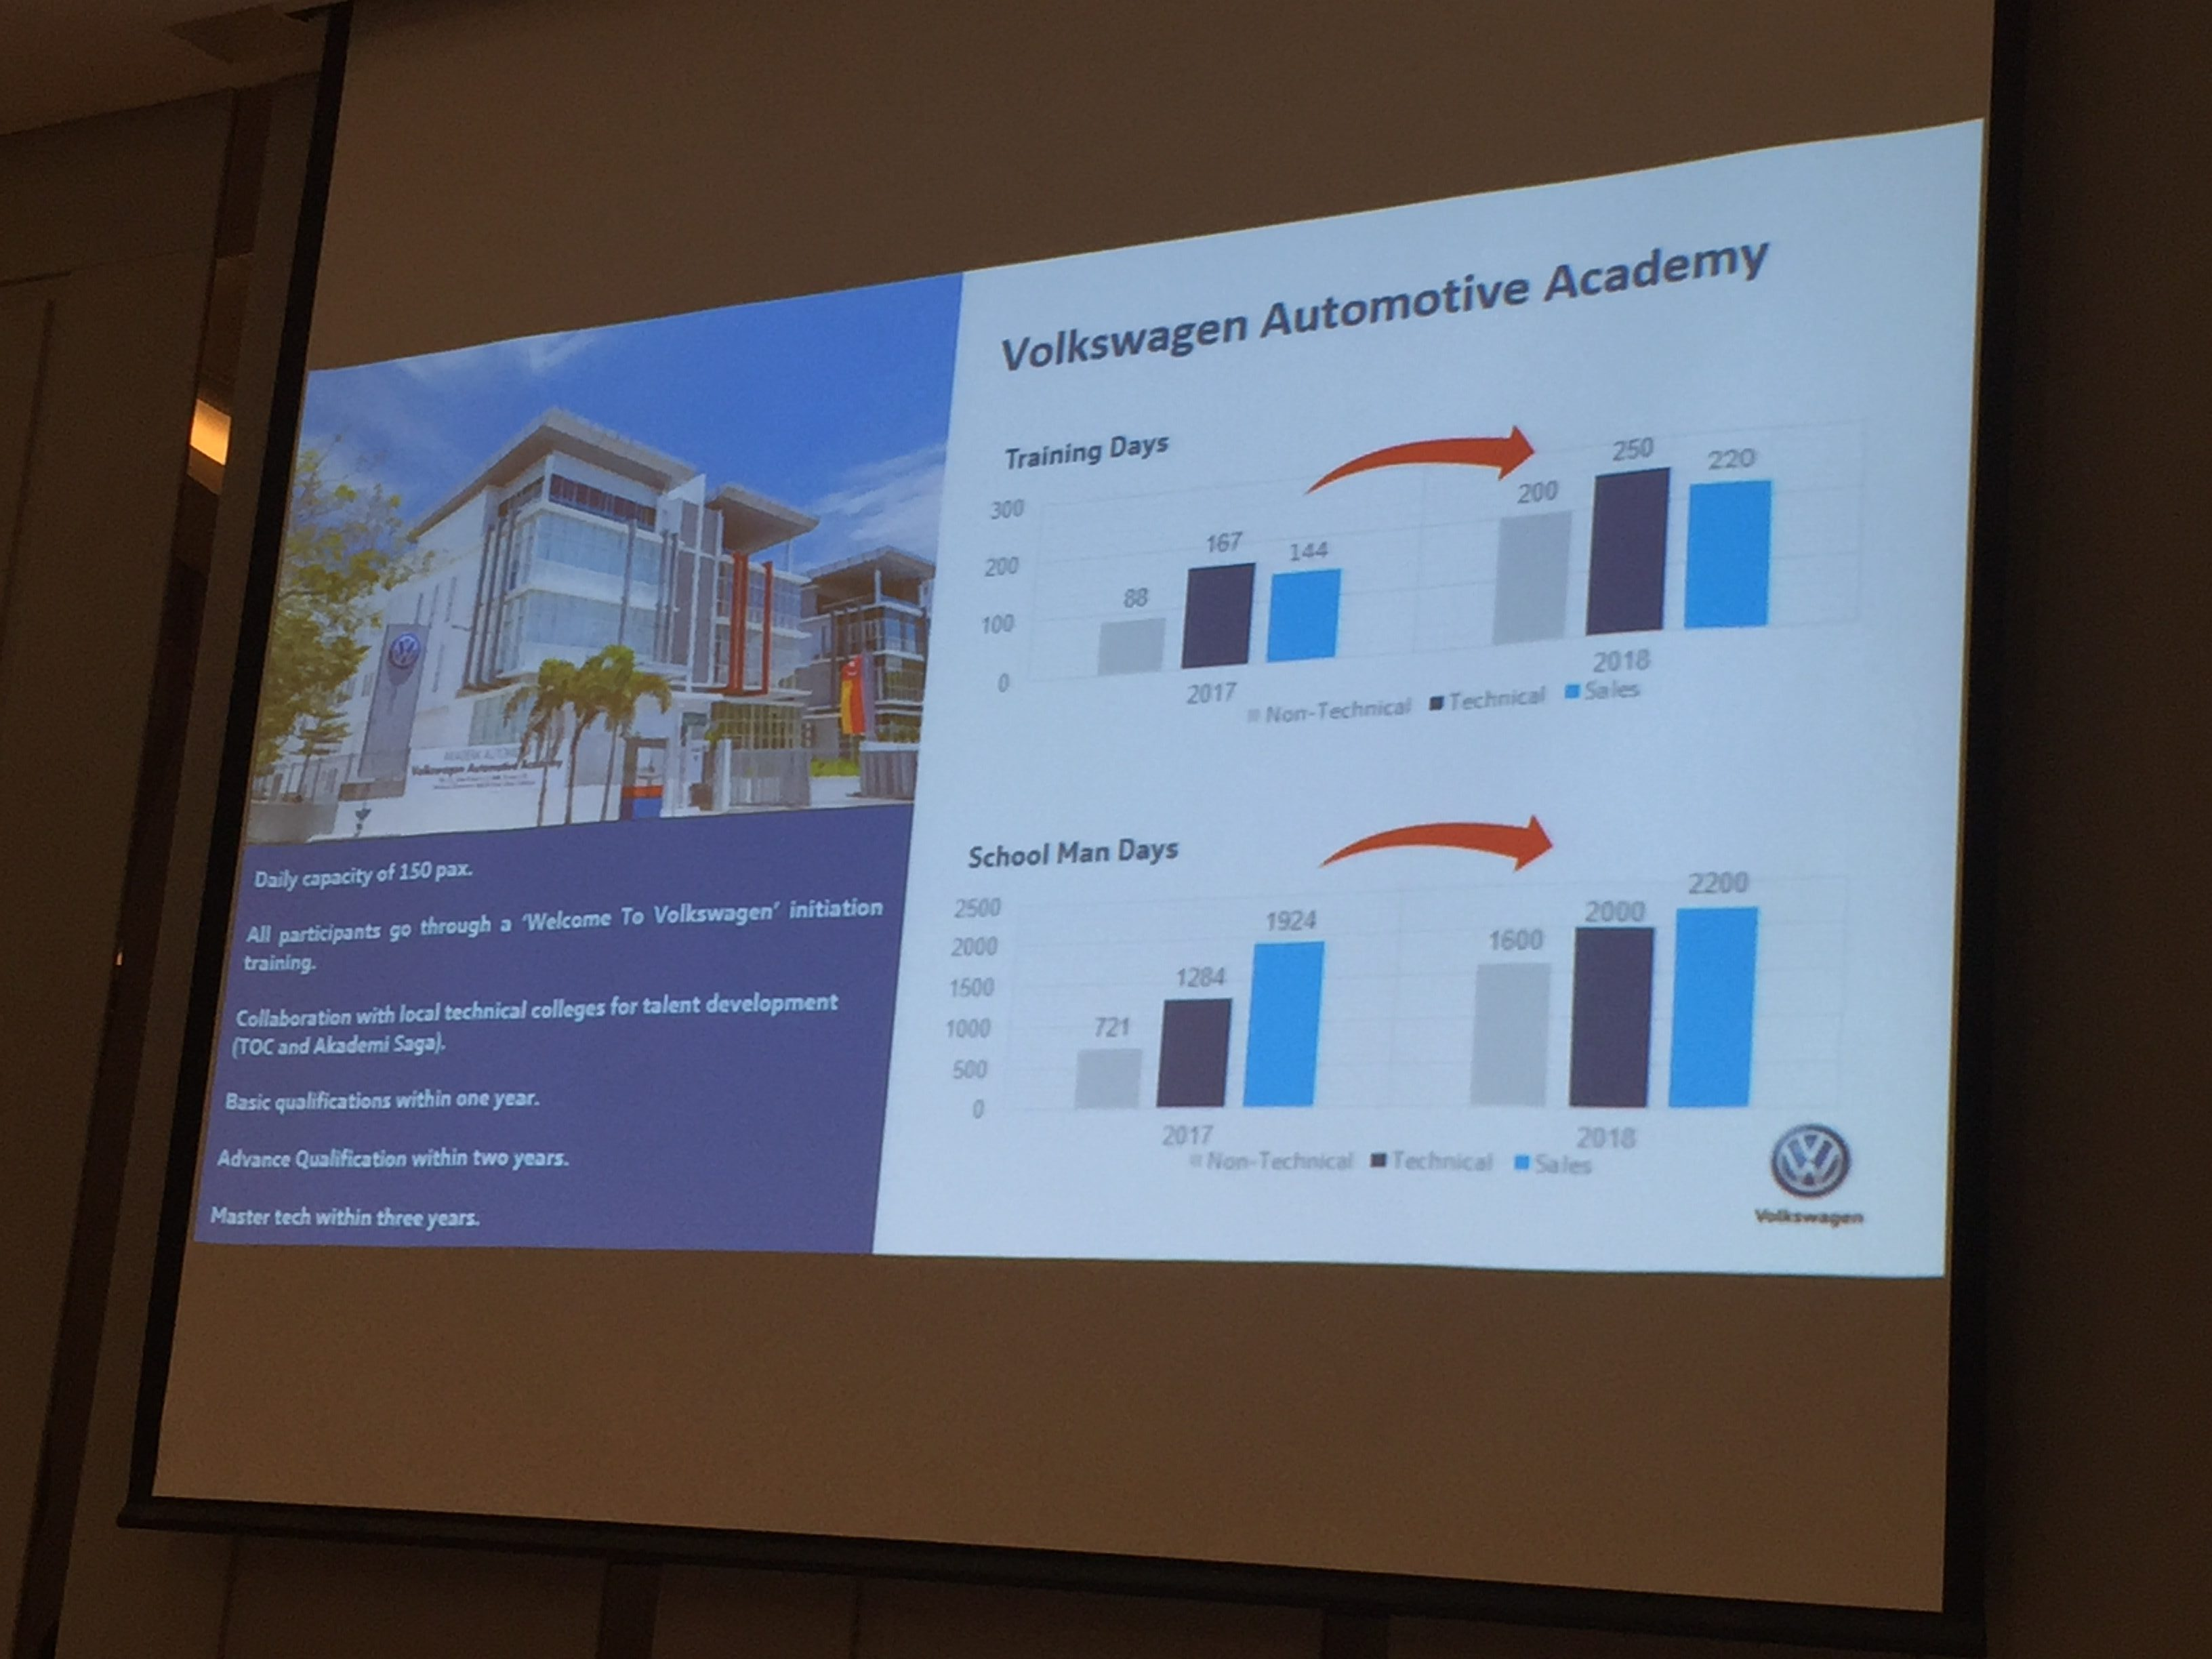 Aside from ensuring parts are more durable now VPCM is shoring up on its sales and after sales front liners via training in the Volkswagen Automotive